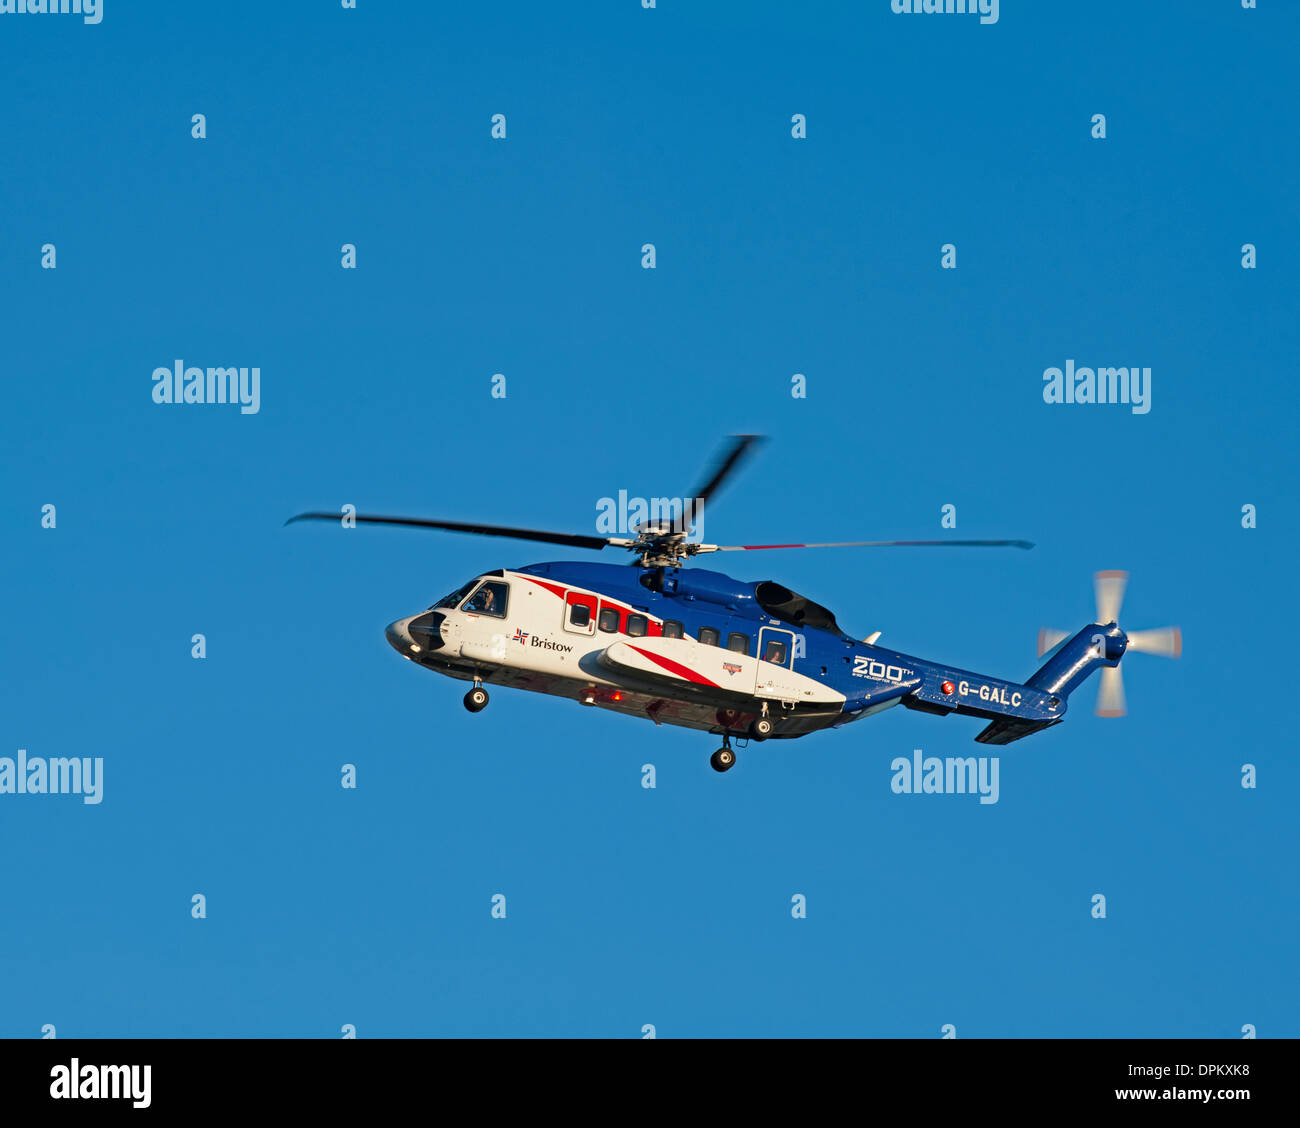 Bristow Helicopter G-GALC Sikorsky S92 approaching Aberdeen Airport. - Stock Image